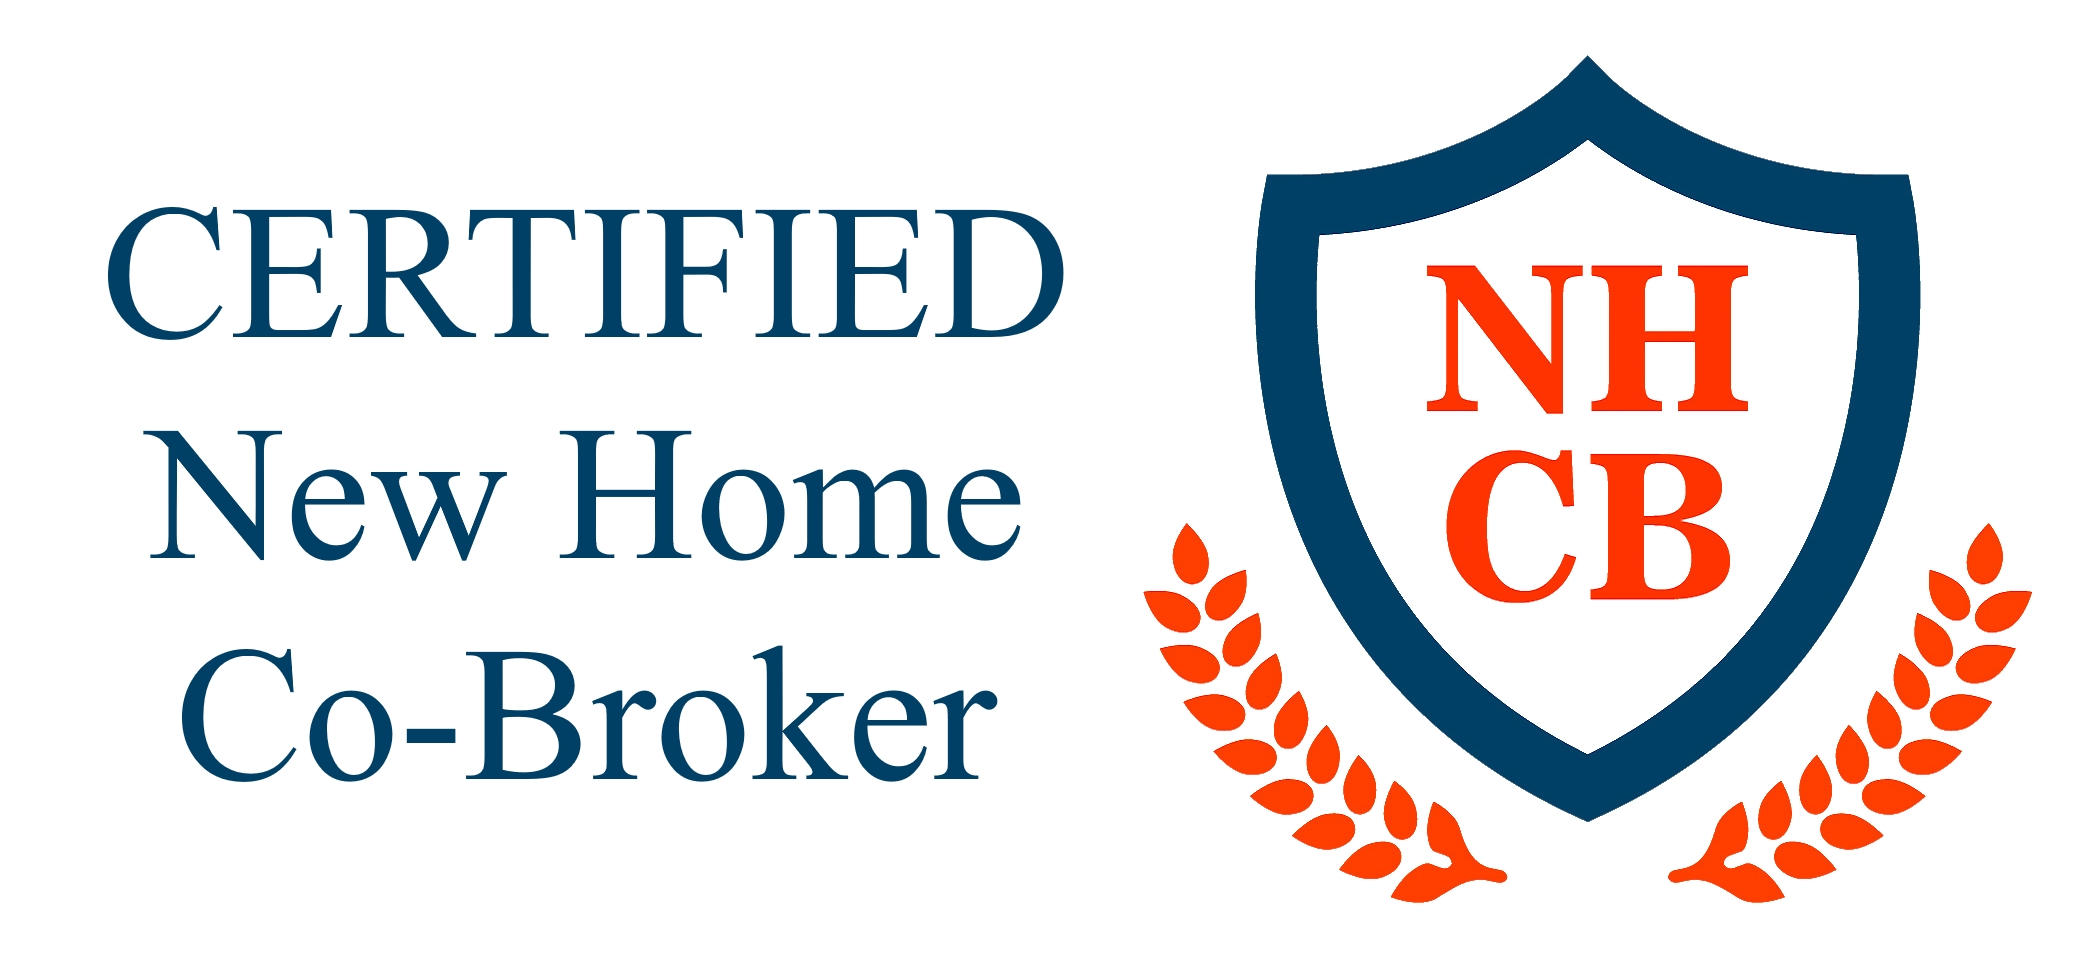 Winter Garden Homes for sale. Certified New Home Co-Broker. Rich Noto Realtor. Windermere Homes for sale